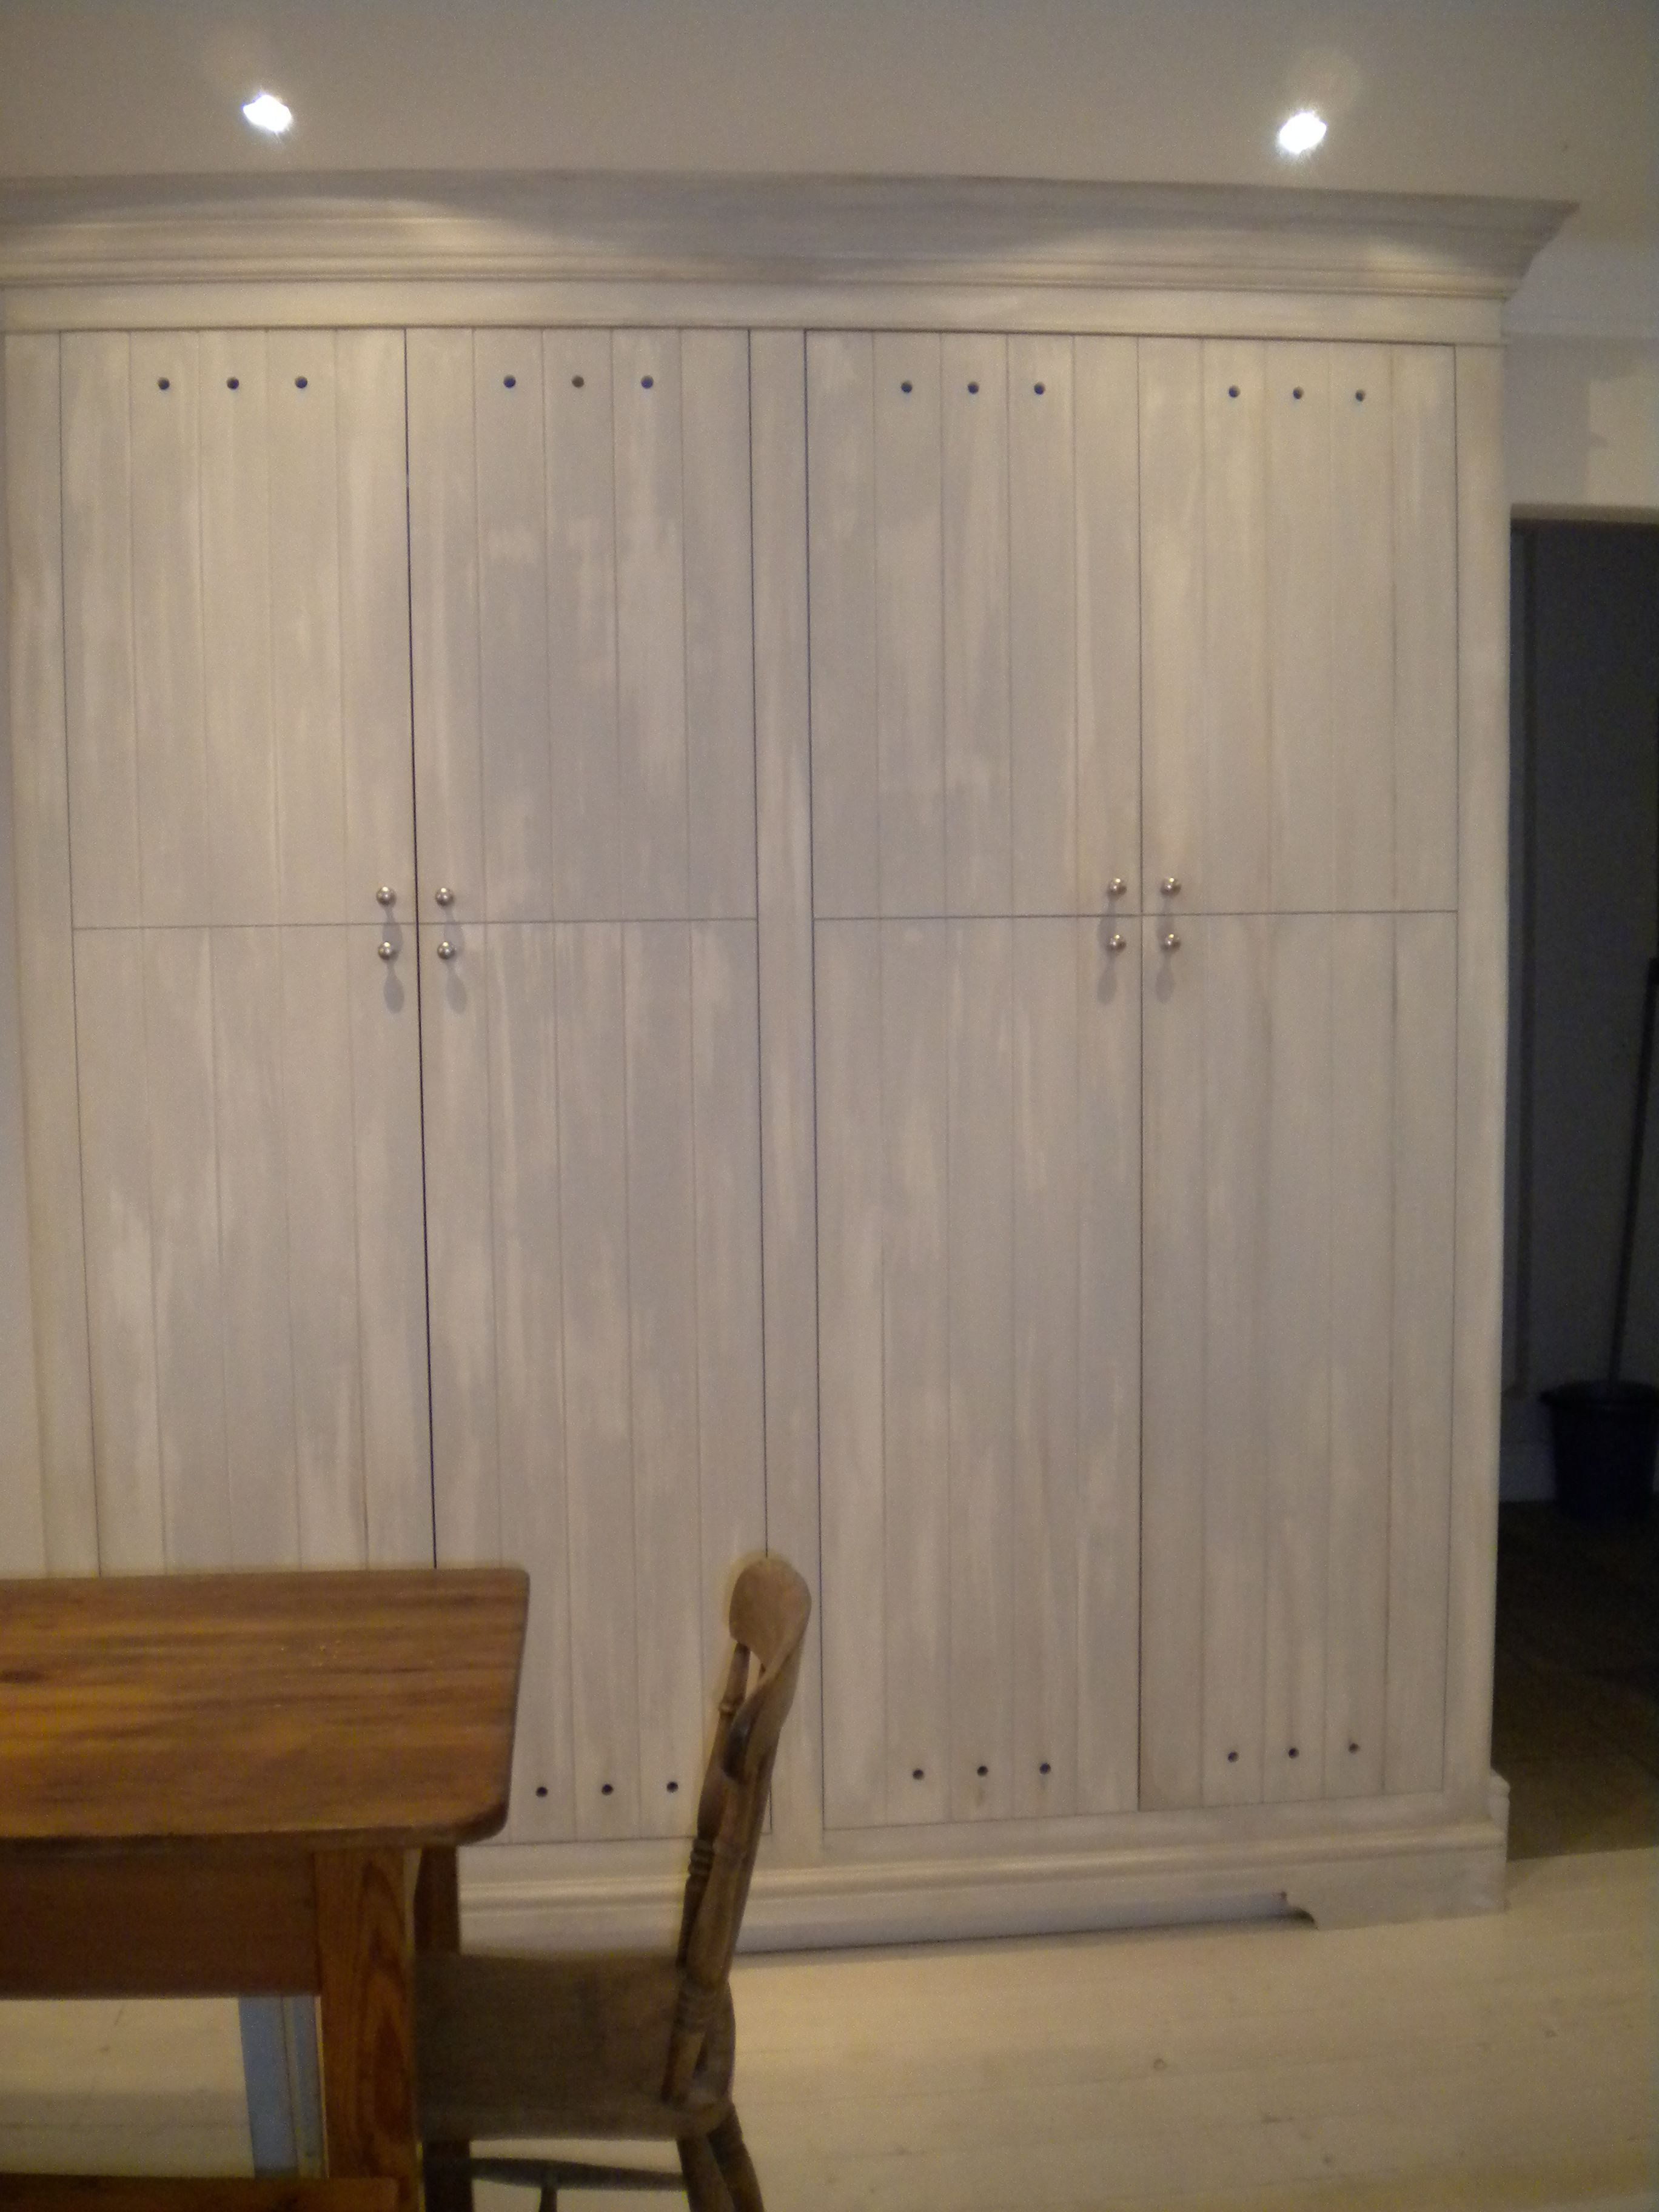 Pantry Cupboard Hand Painted Supawood Mdf Units With A Aged Finish Free Standing Kitchen Pantry Kitchen Cabinet Storage Bathroom Floor Storage